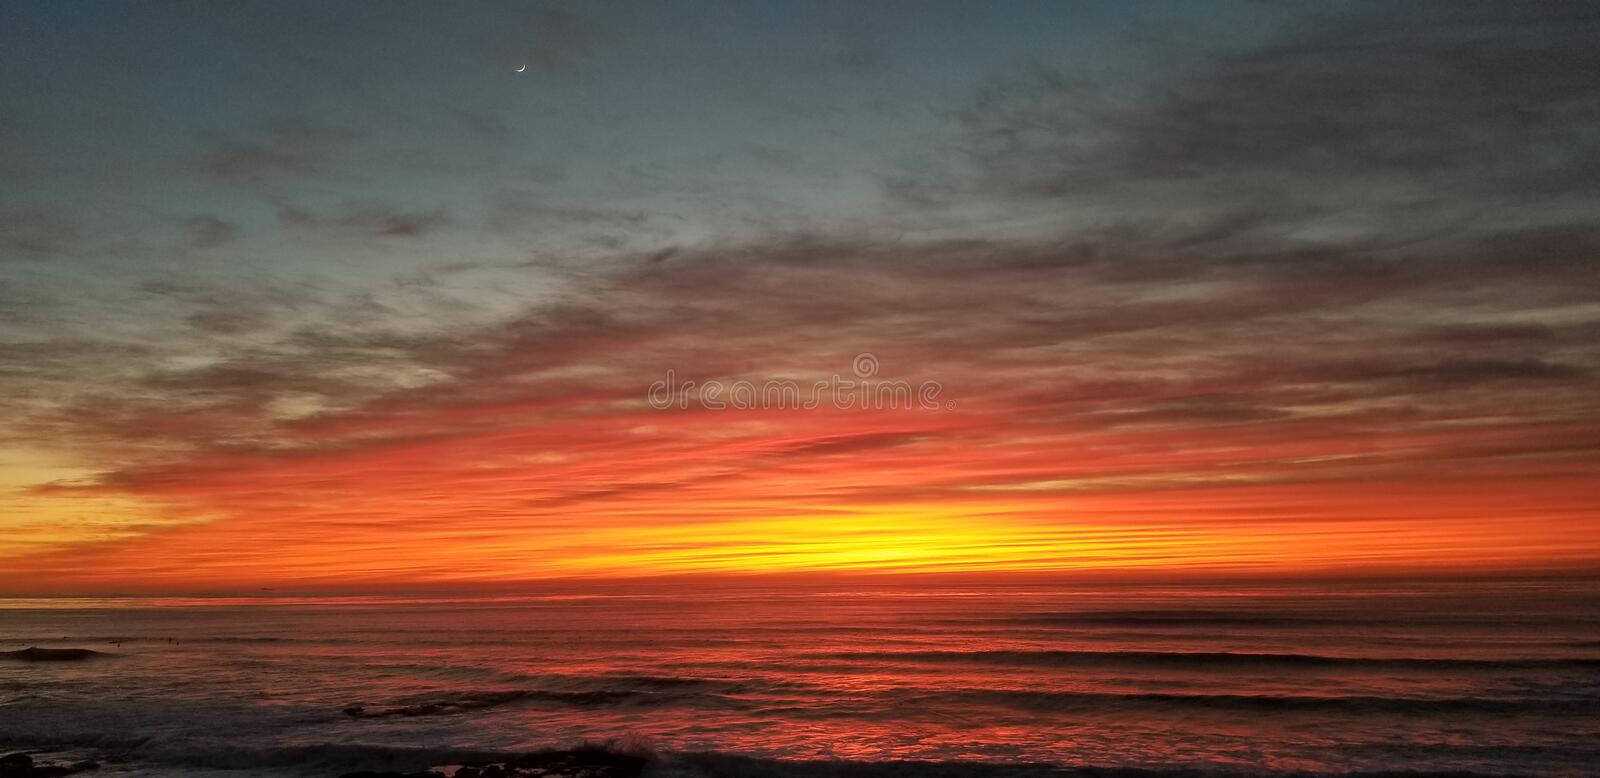 Dramatic Sunset over Pacific Ocean - Waves Crashing on the Rocks royalty free stock photos